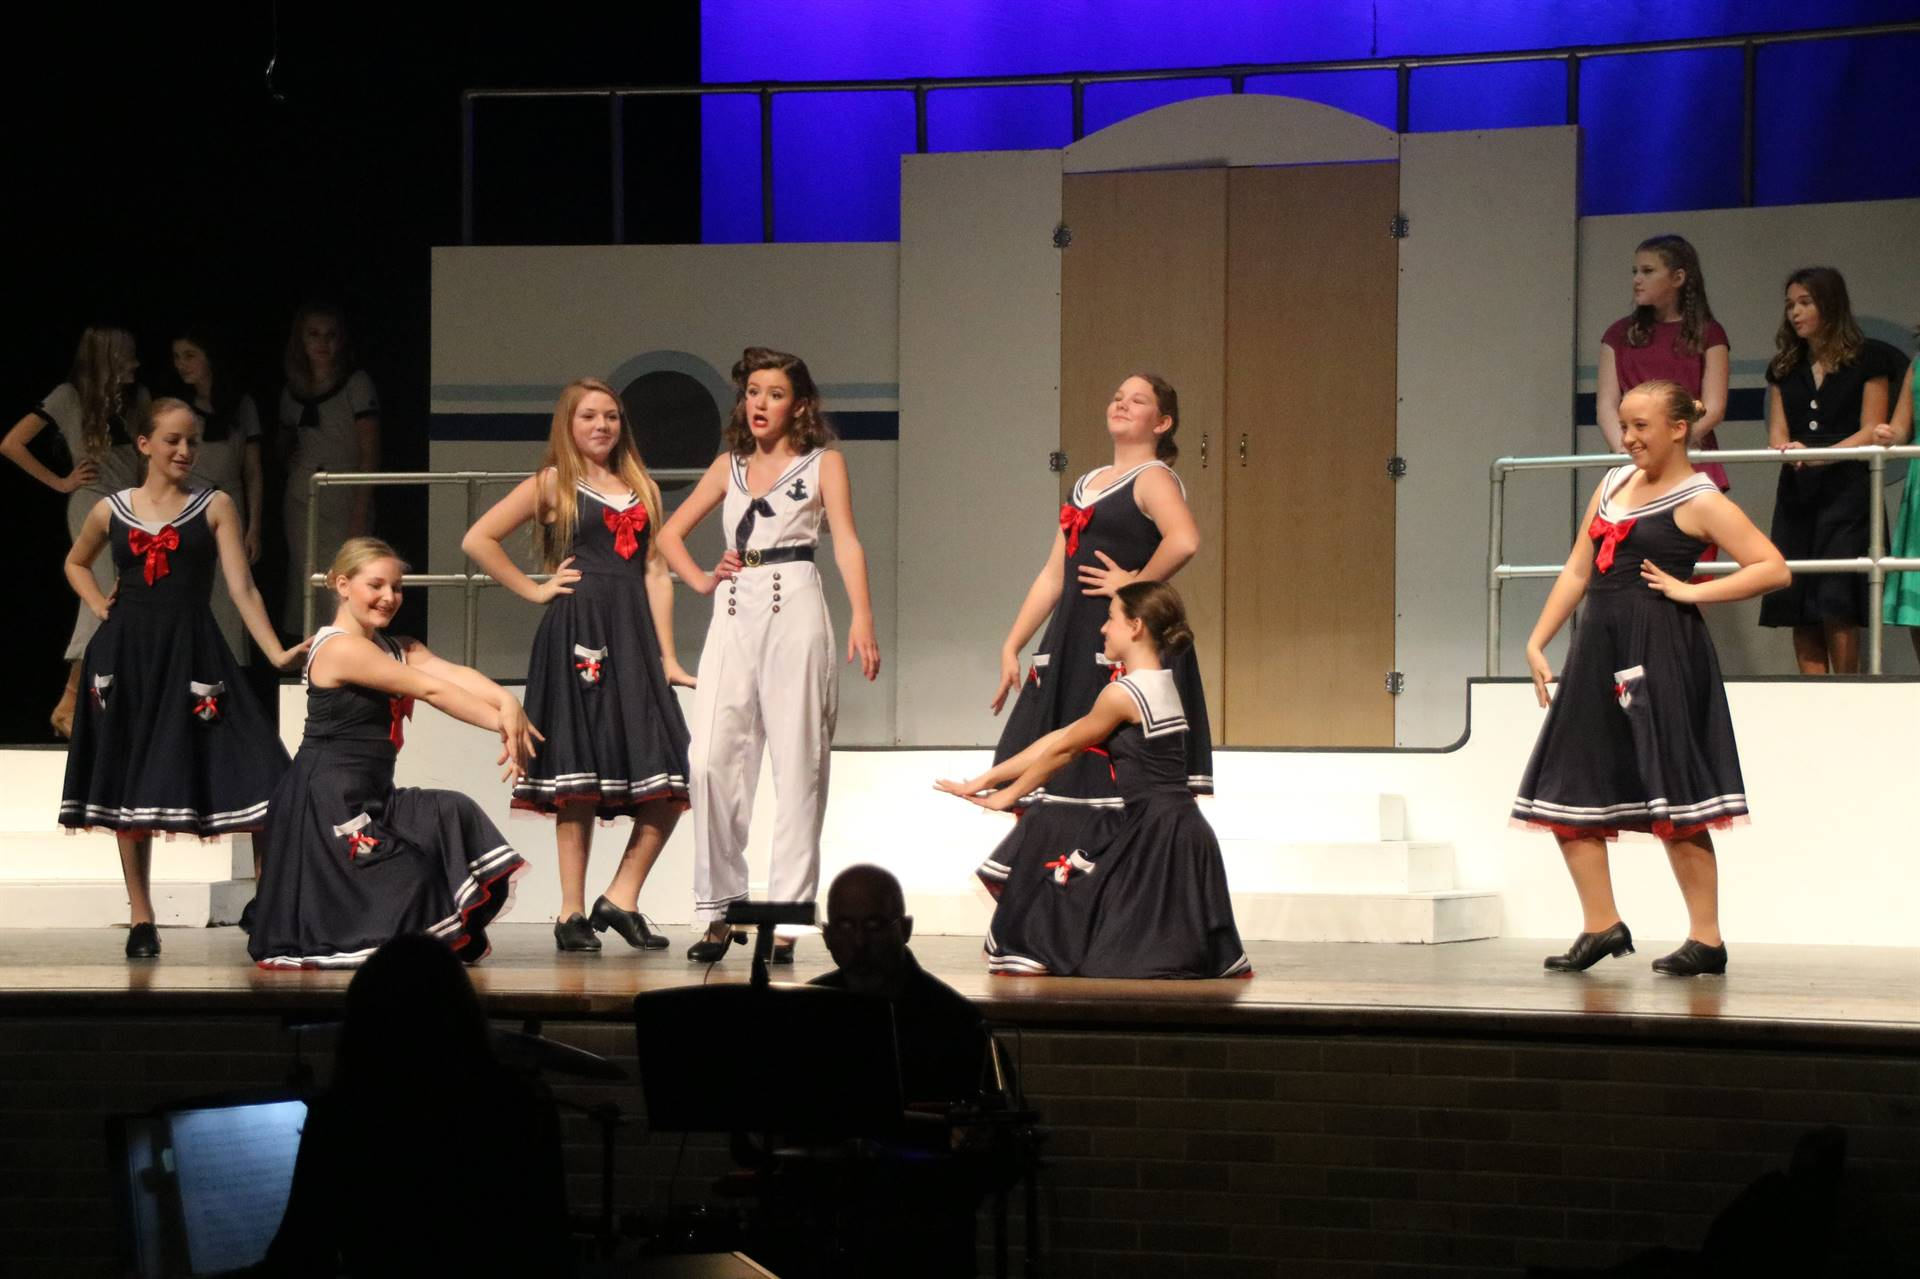 Students dancing on stage in costume - PJHS's fall musical, Anything Goes